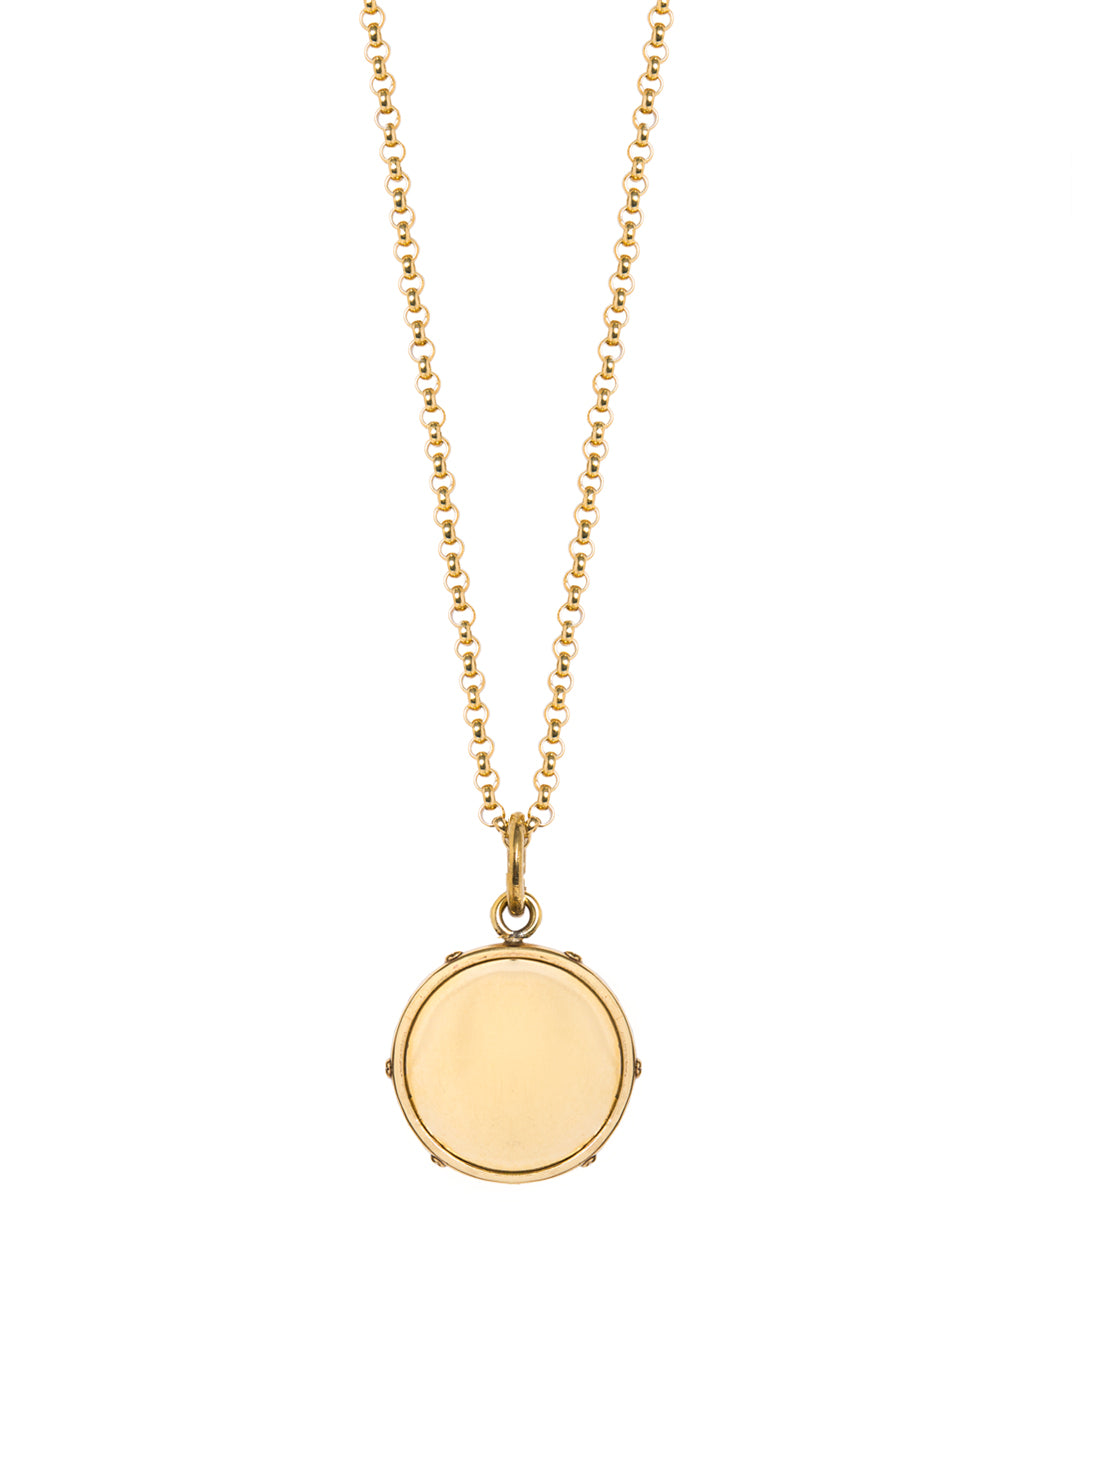 Medium Gold Disc Necklace by Tilly Sveaas